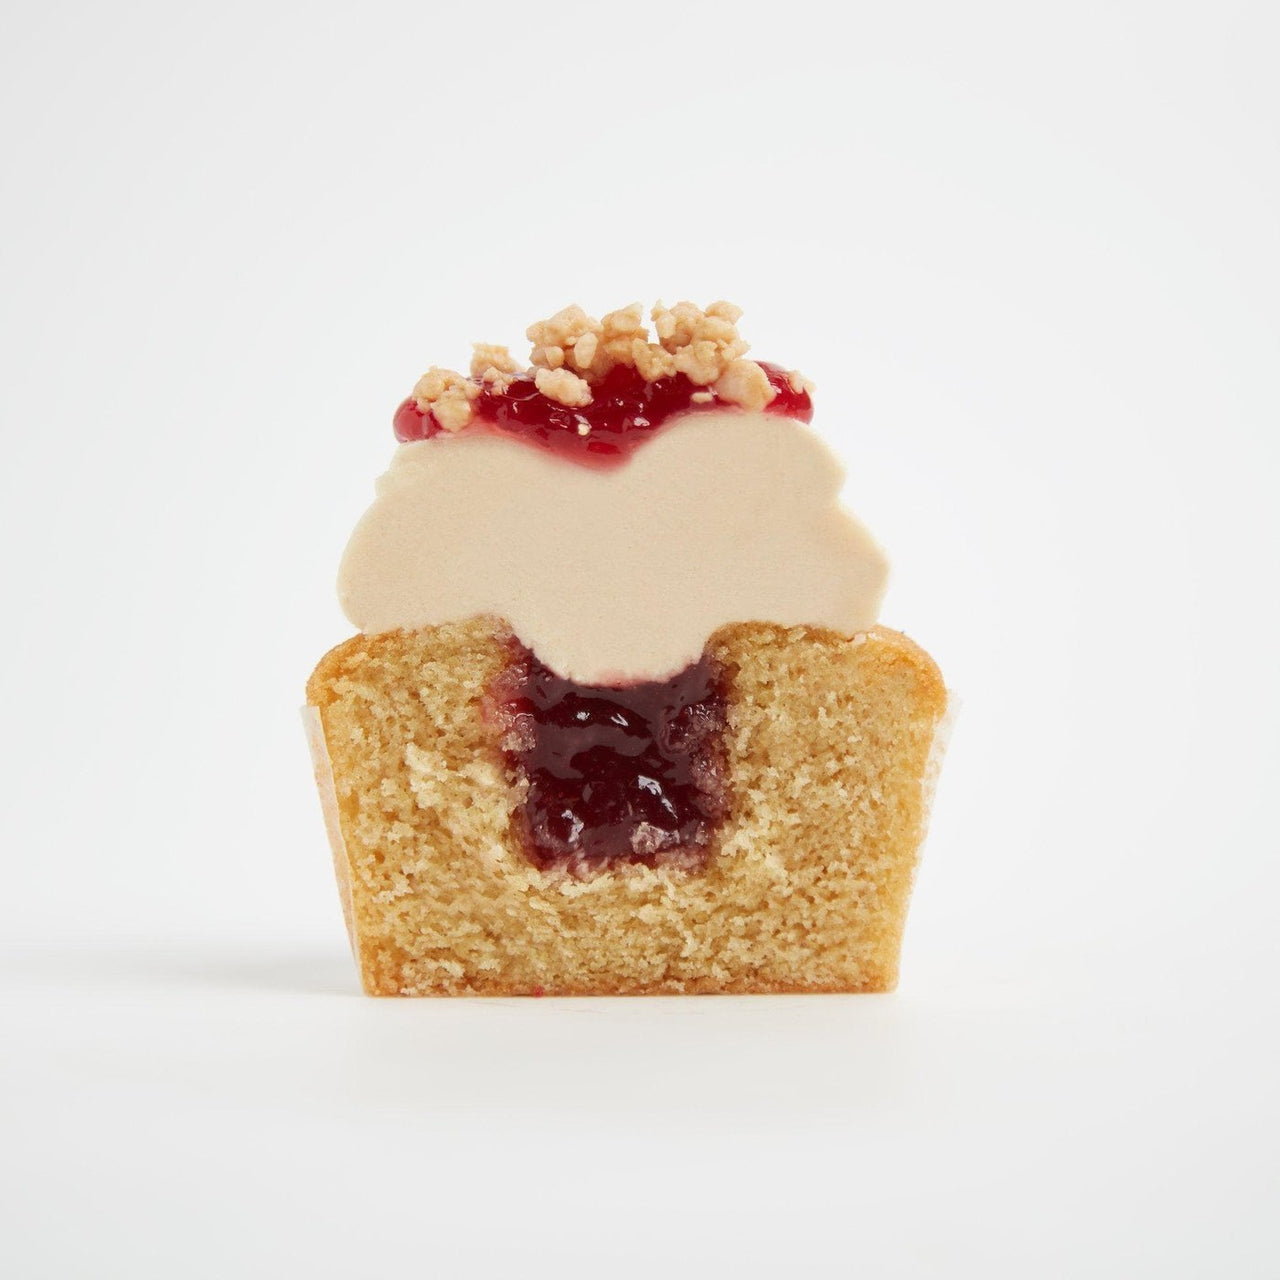 PB&J Cupcakes by Crumbs & Doilies